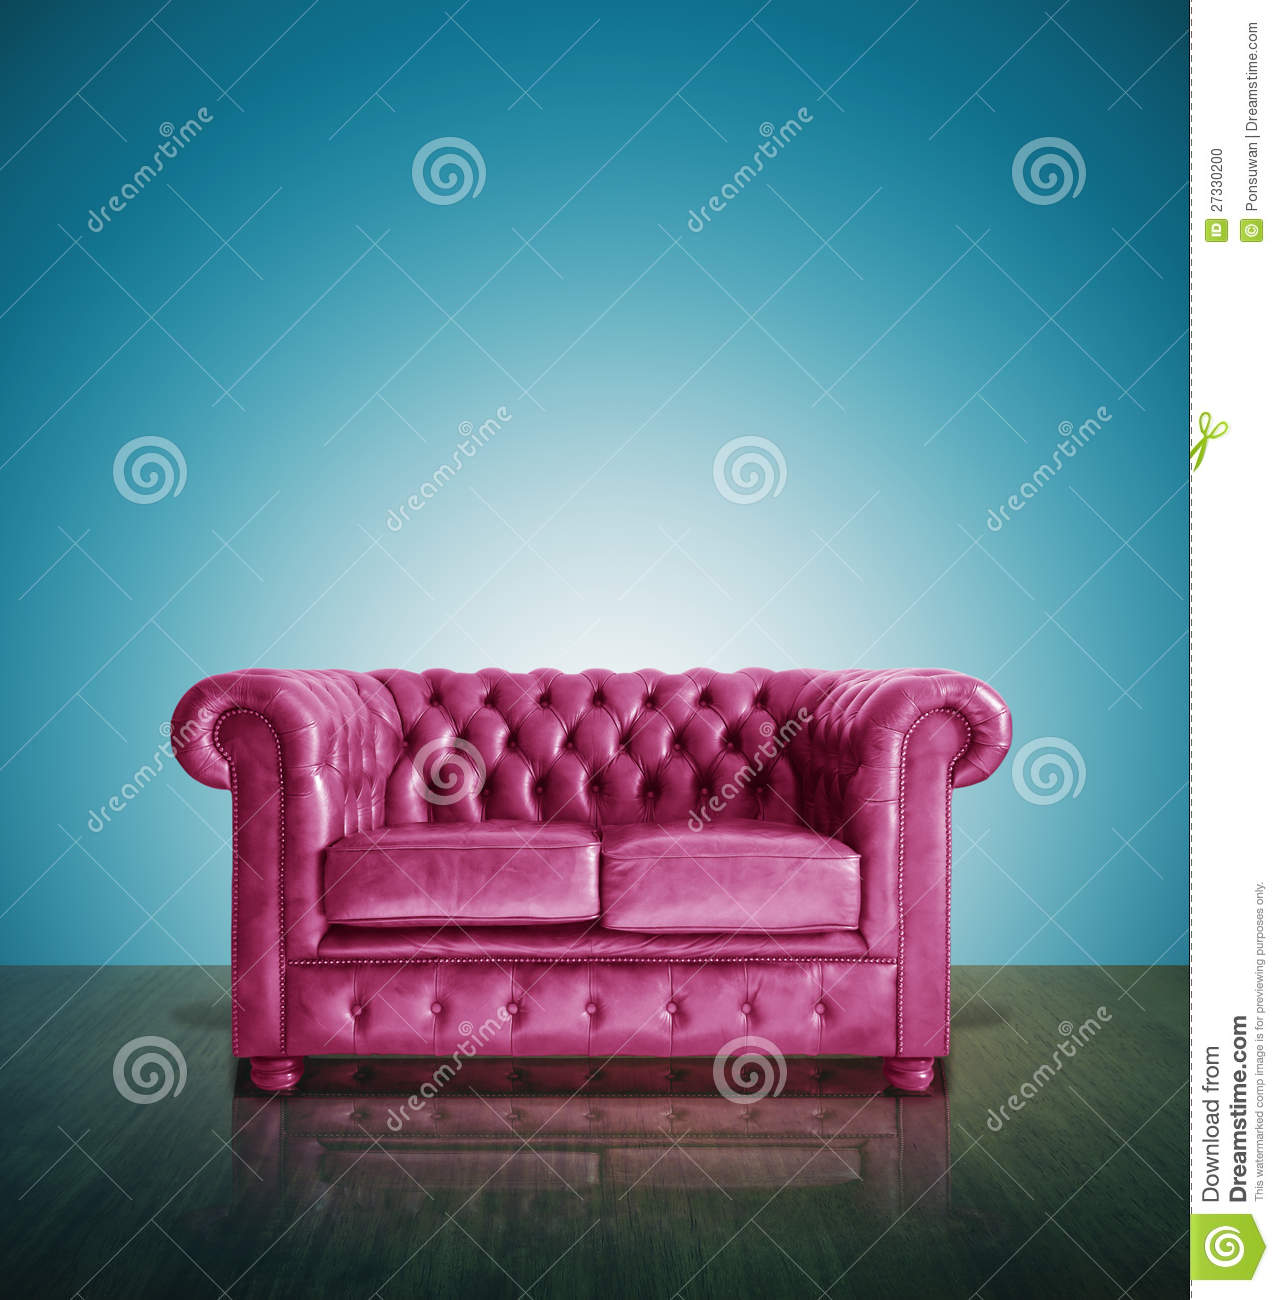 Classic Pink Leather Sofa Stock Photo Image 27330200